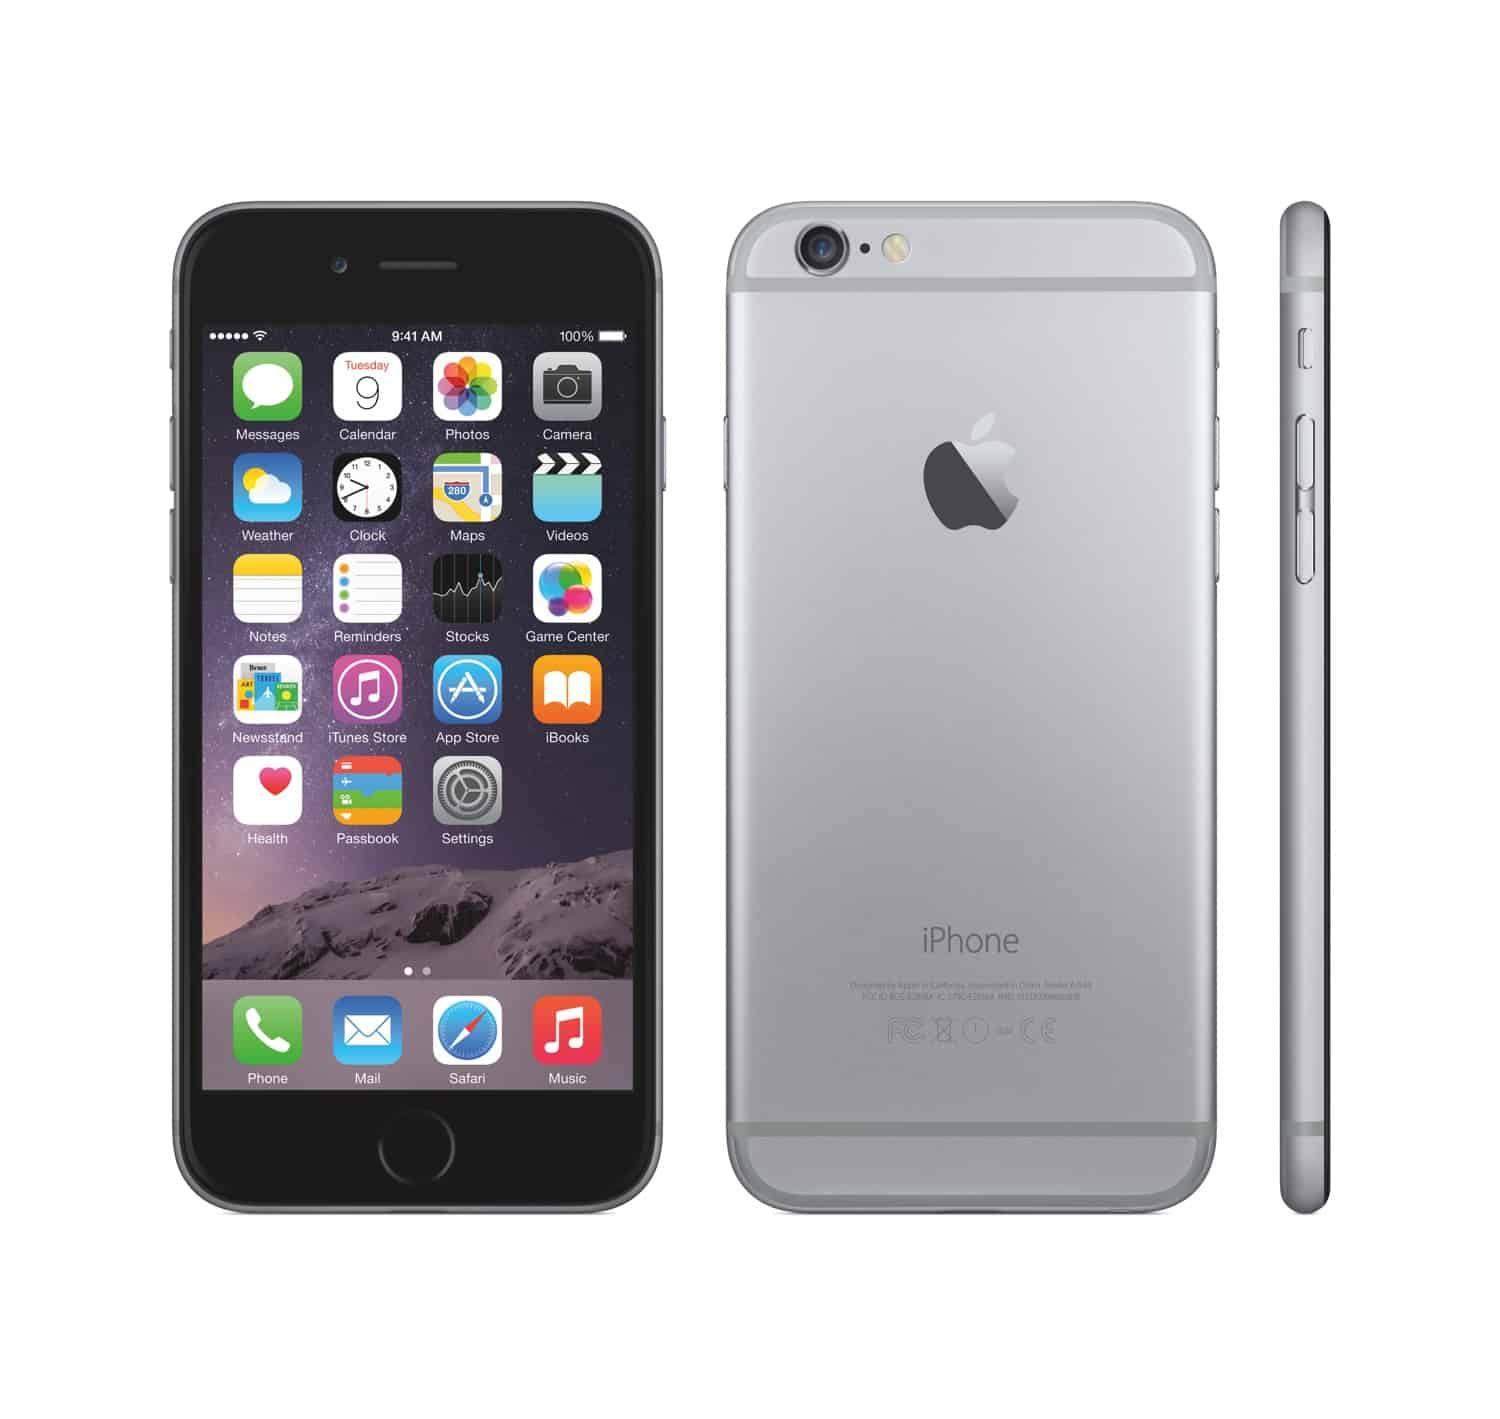 iphone 6 16gb black unlocked 8 10 used cell phones. Black Bedroom Furniture Sets. Home Design Ideas